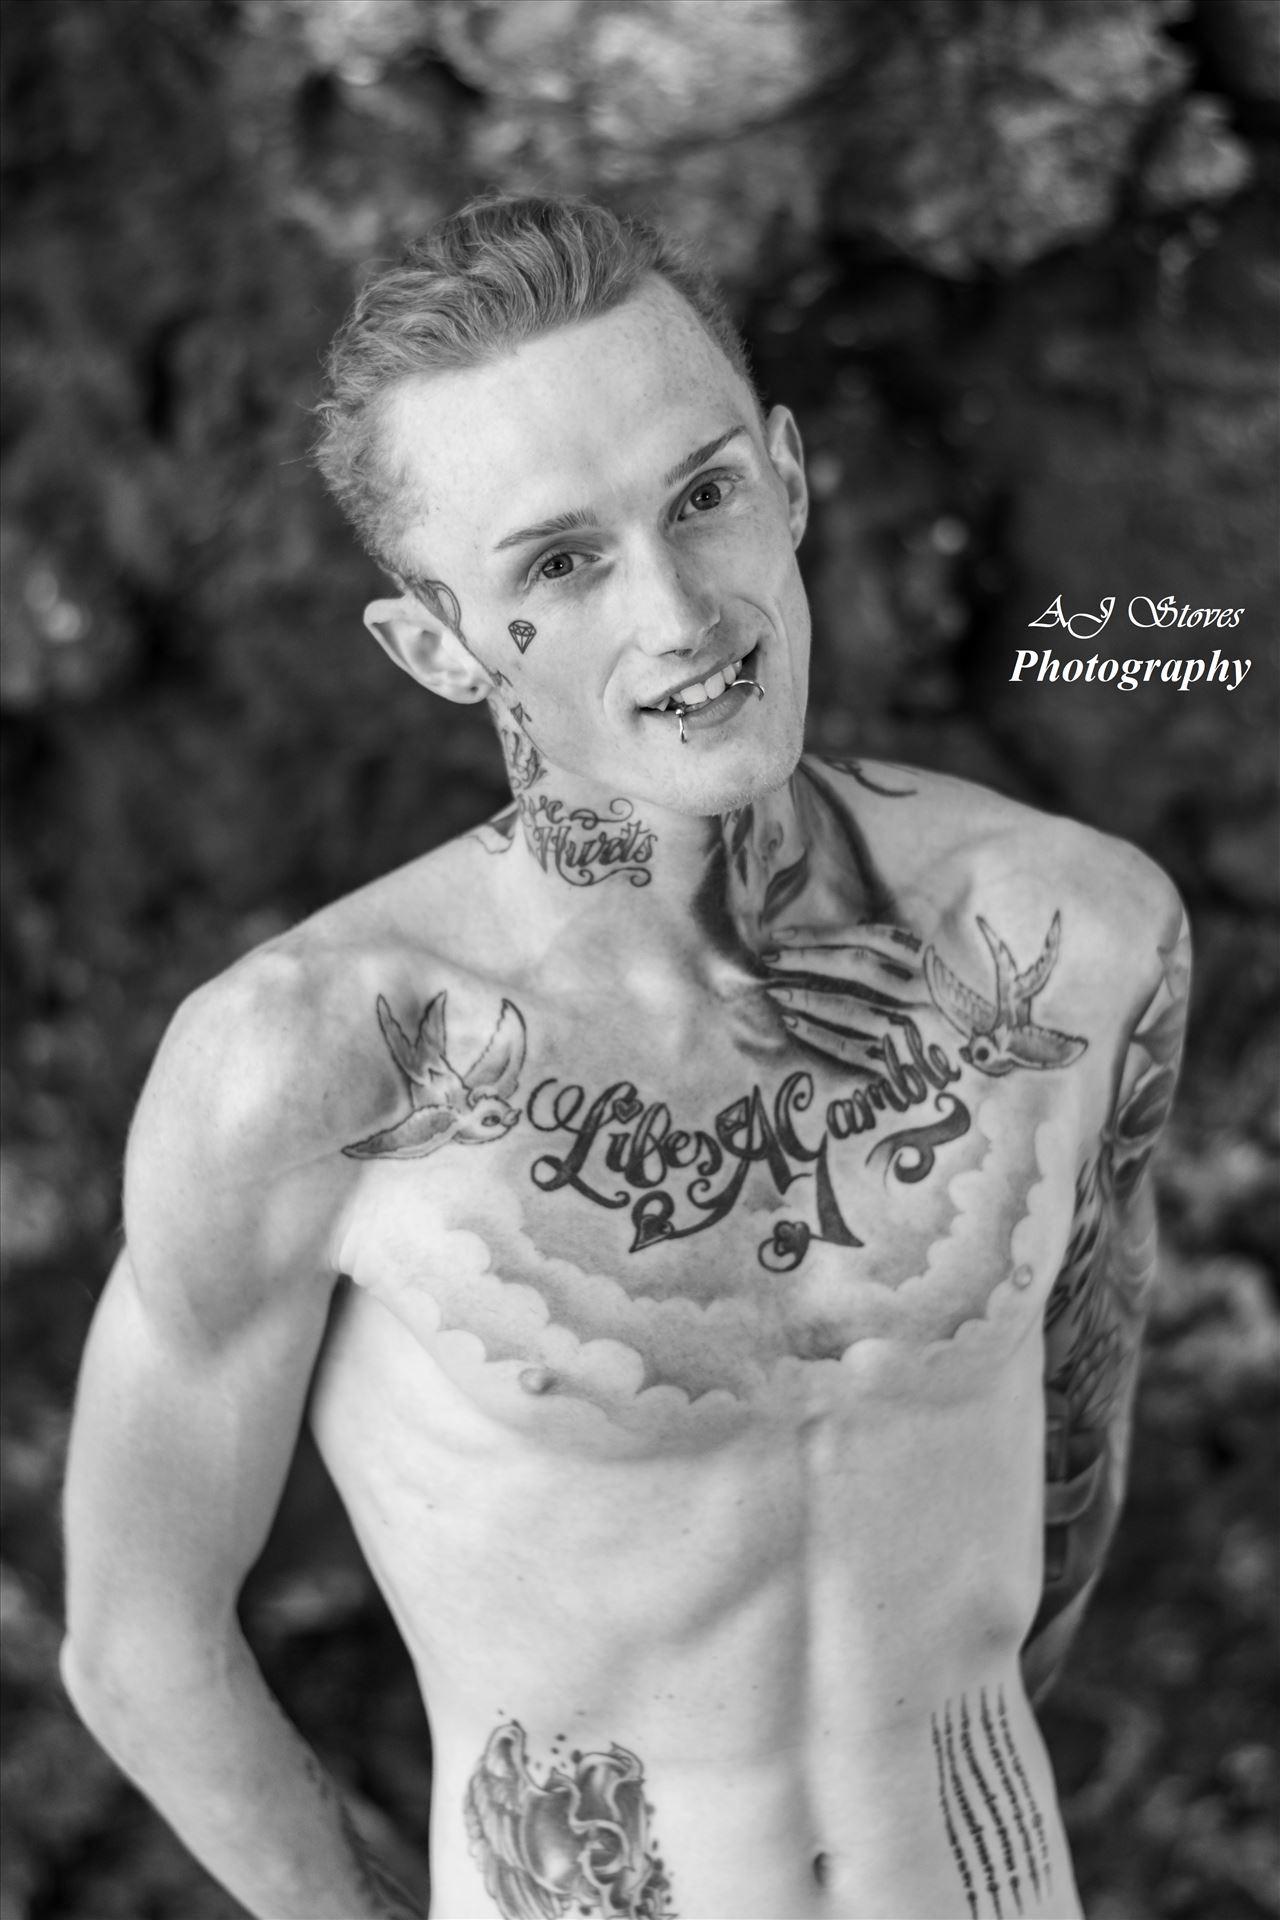 Luke Proctor 10 - Great shoot with Luke down Seaham Beach by AJ Stoves Photography